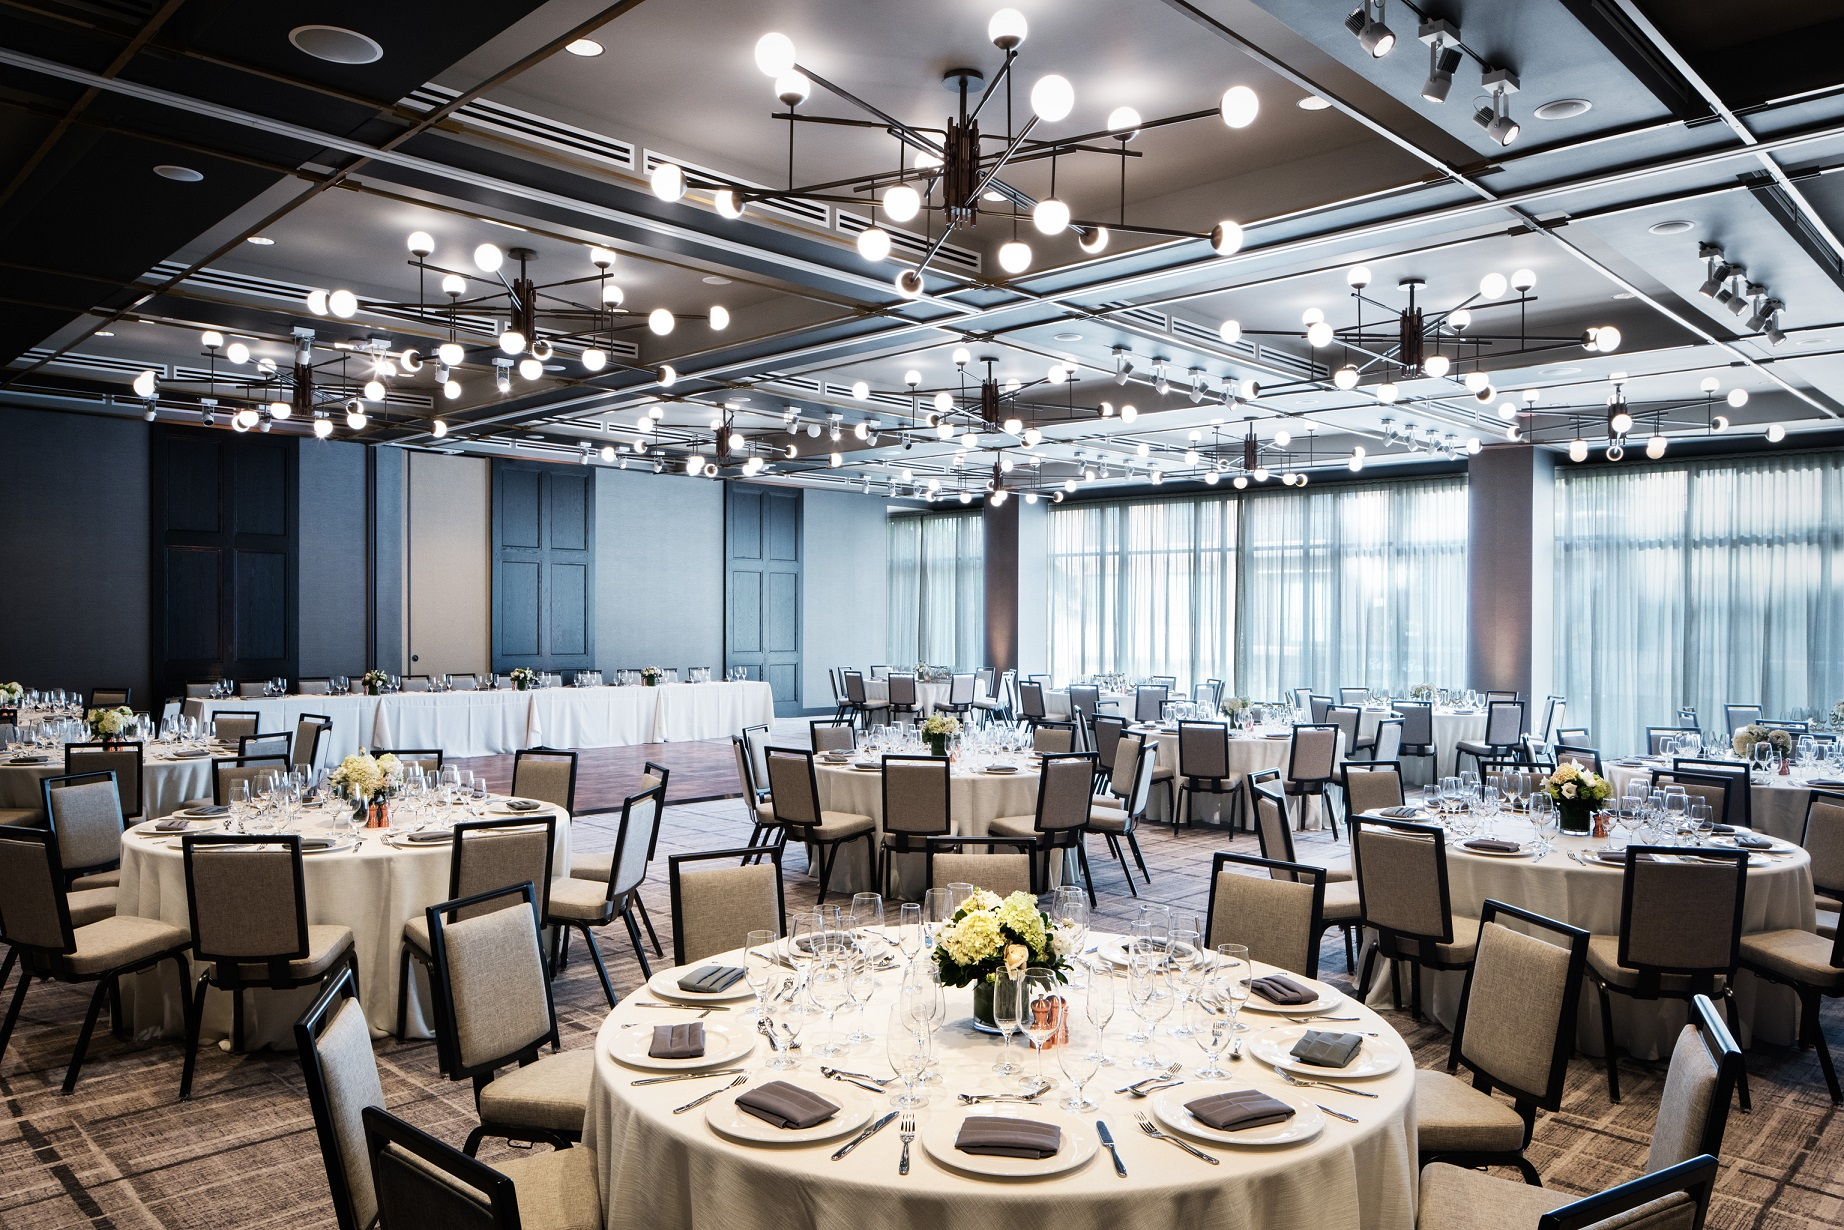 HALCYON, a hotel in Cherry Creek event space in denver